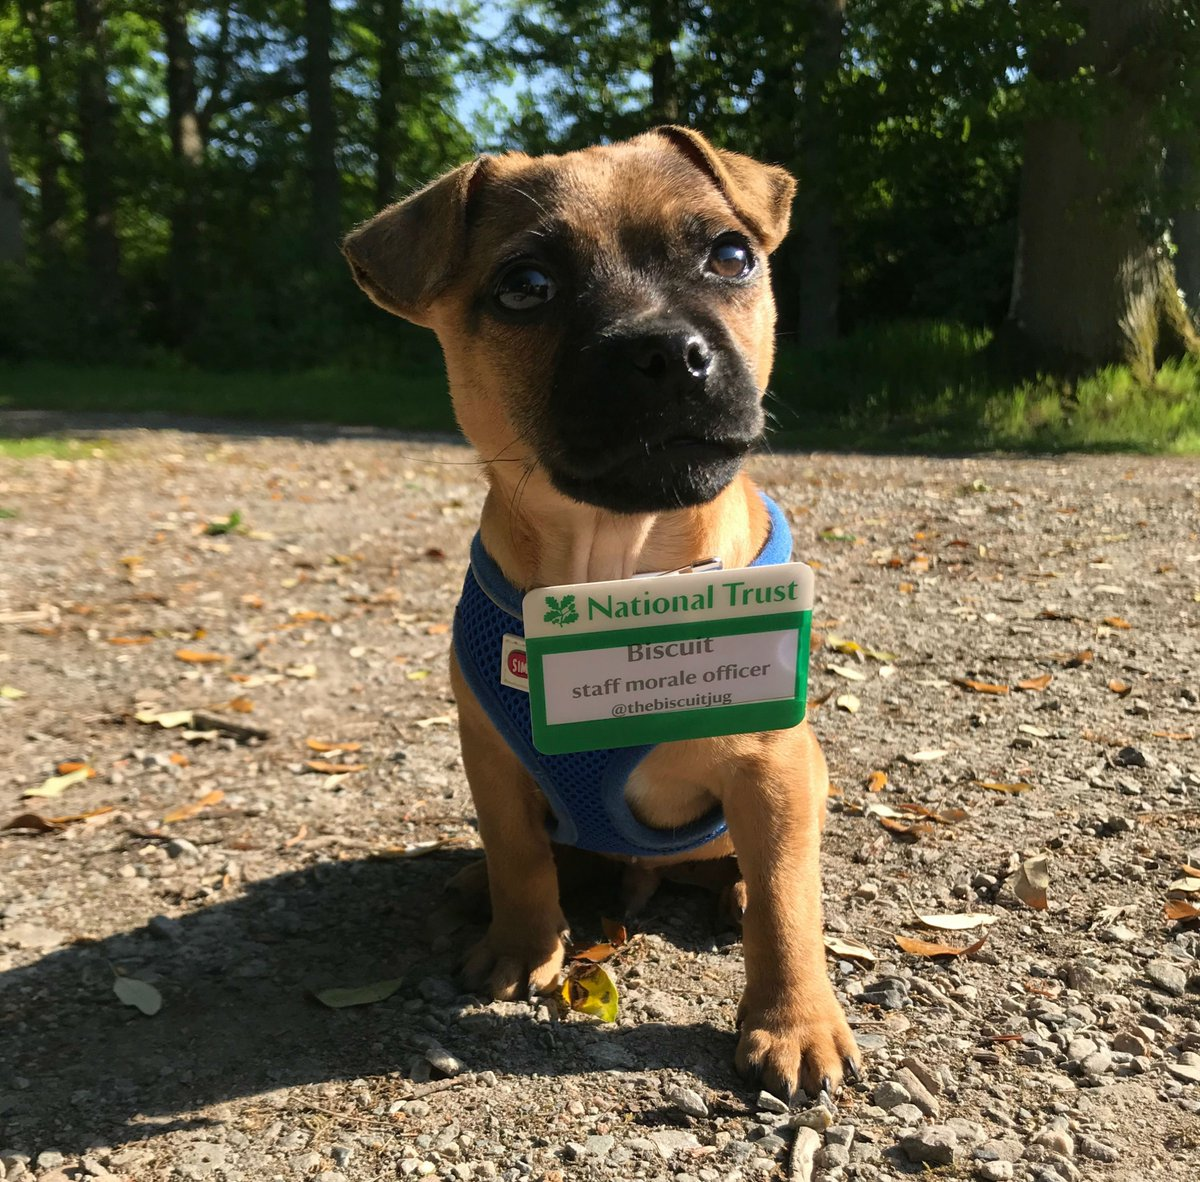 Meet Biscuit, our smallest member of staff at The Argory, @NationalTrustNI. #BringYourDogToWork #TakeYourDogToWorkDay